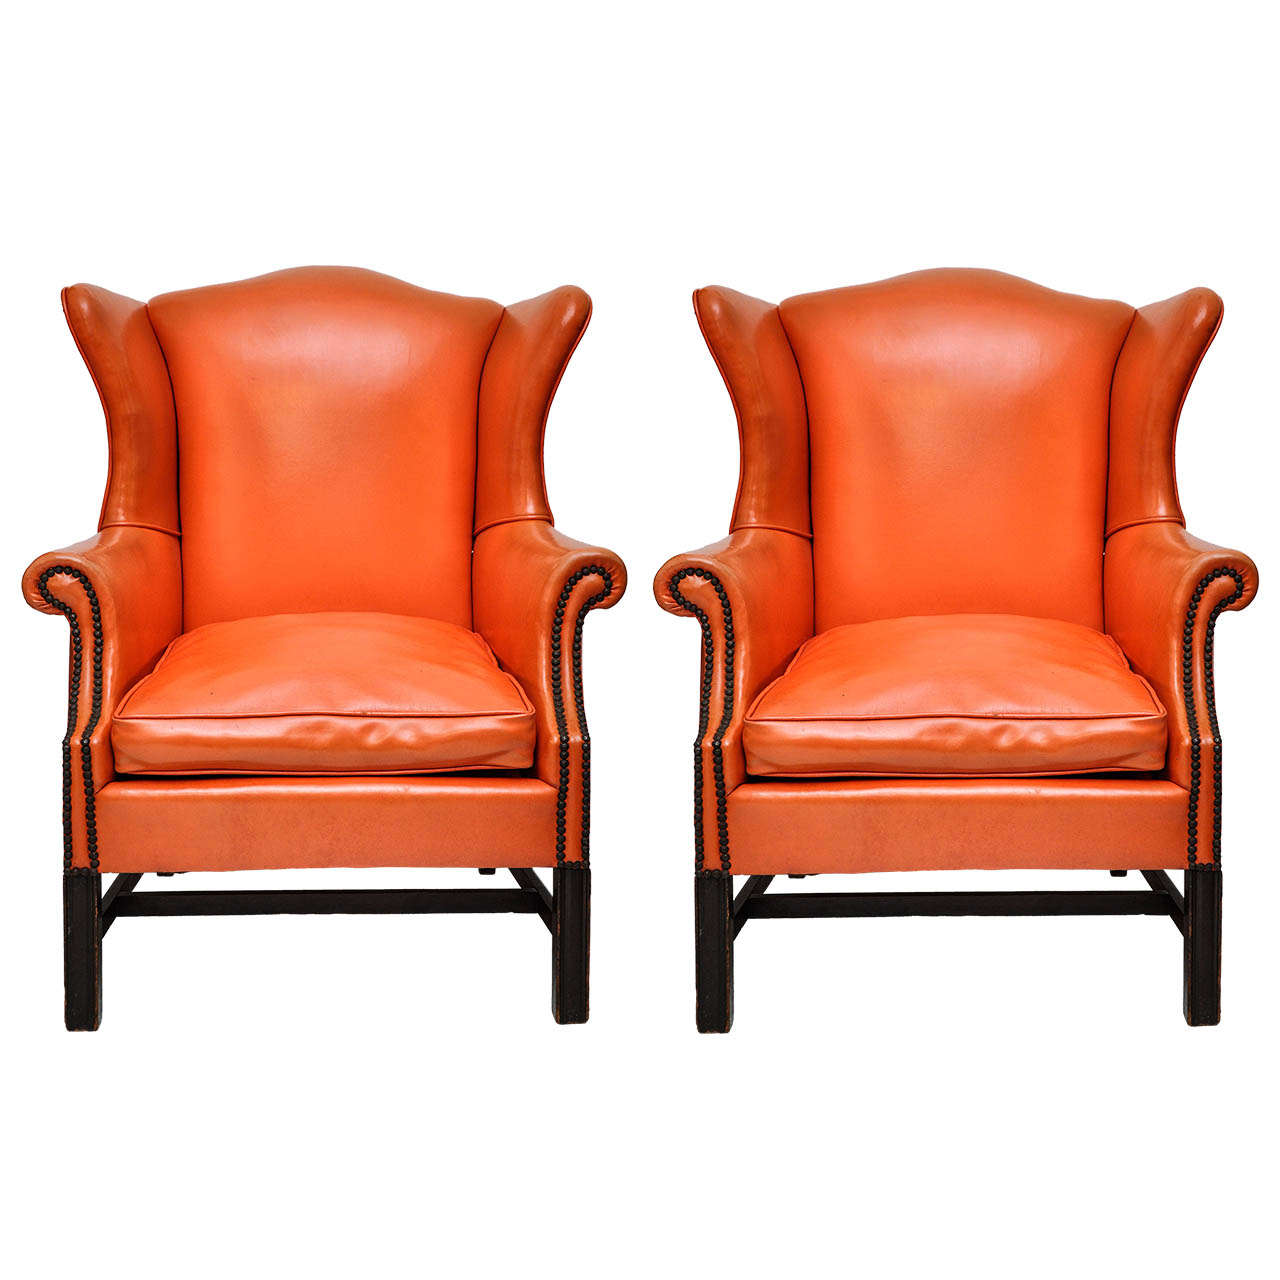 Orange Leather Chair Vintage Orange Leather Wing Chair At 1stdibs